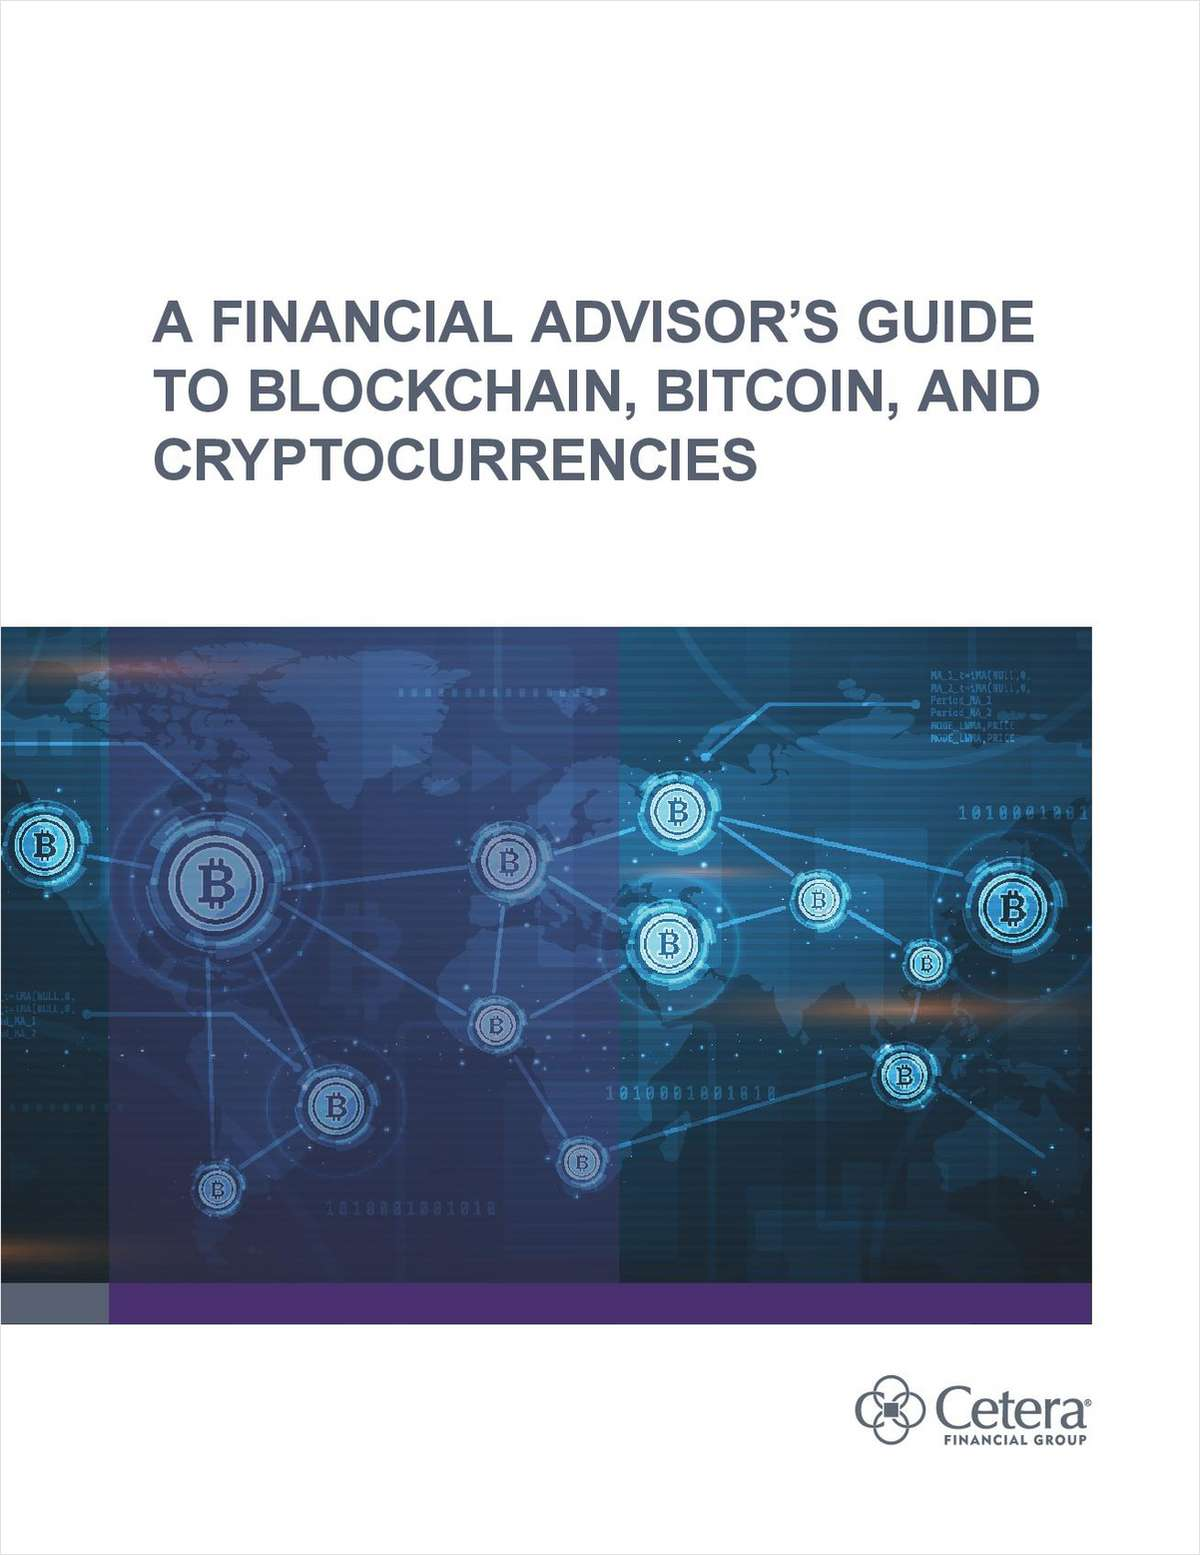 A Credit Union Advisor's Guide to Blockchain, Bitcoin, and Cryptocurrencies